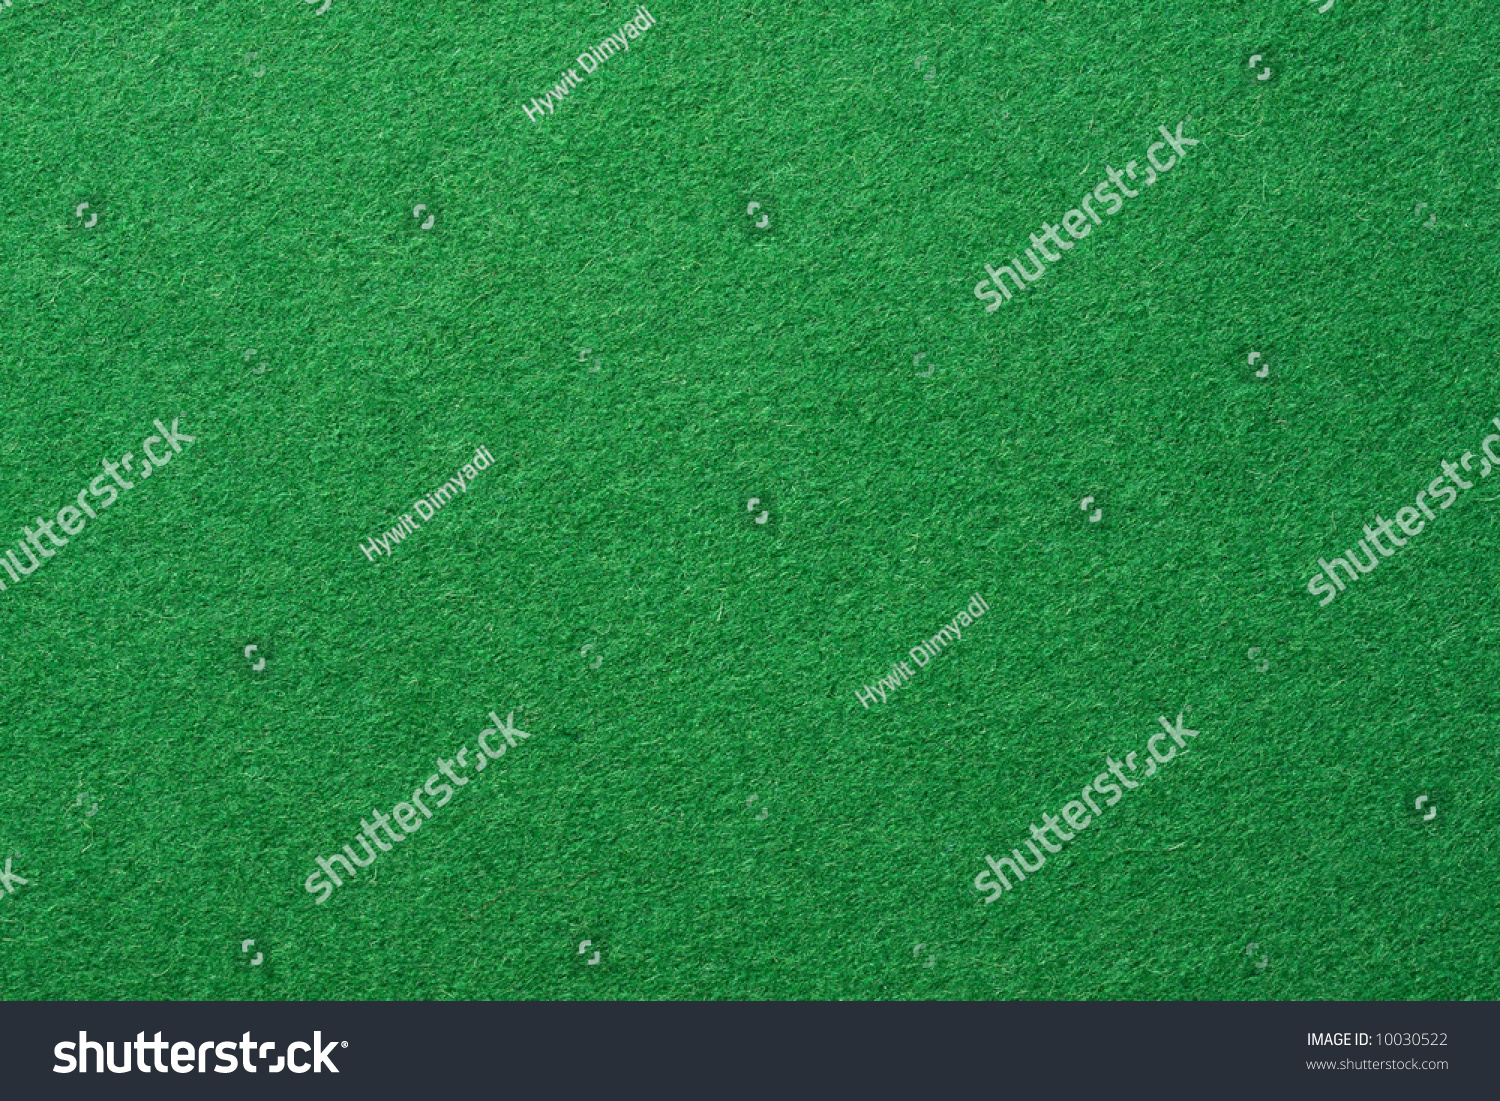 Green felt background useful for poker table or pool table surface